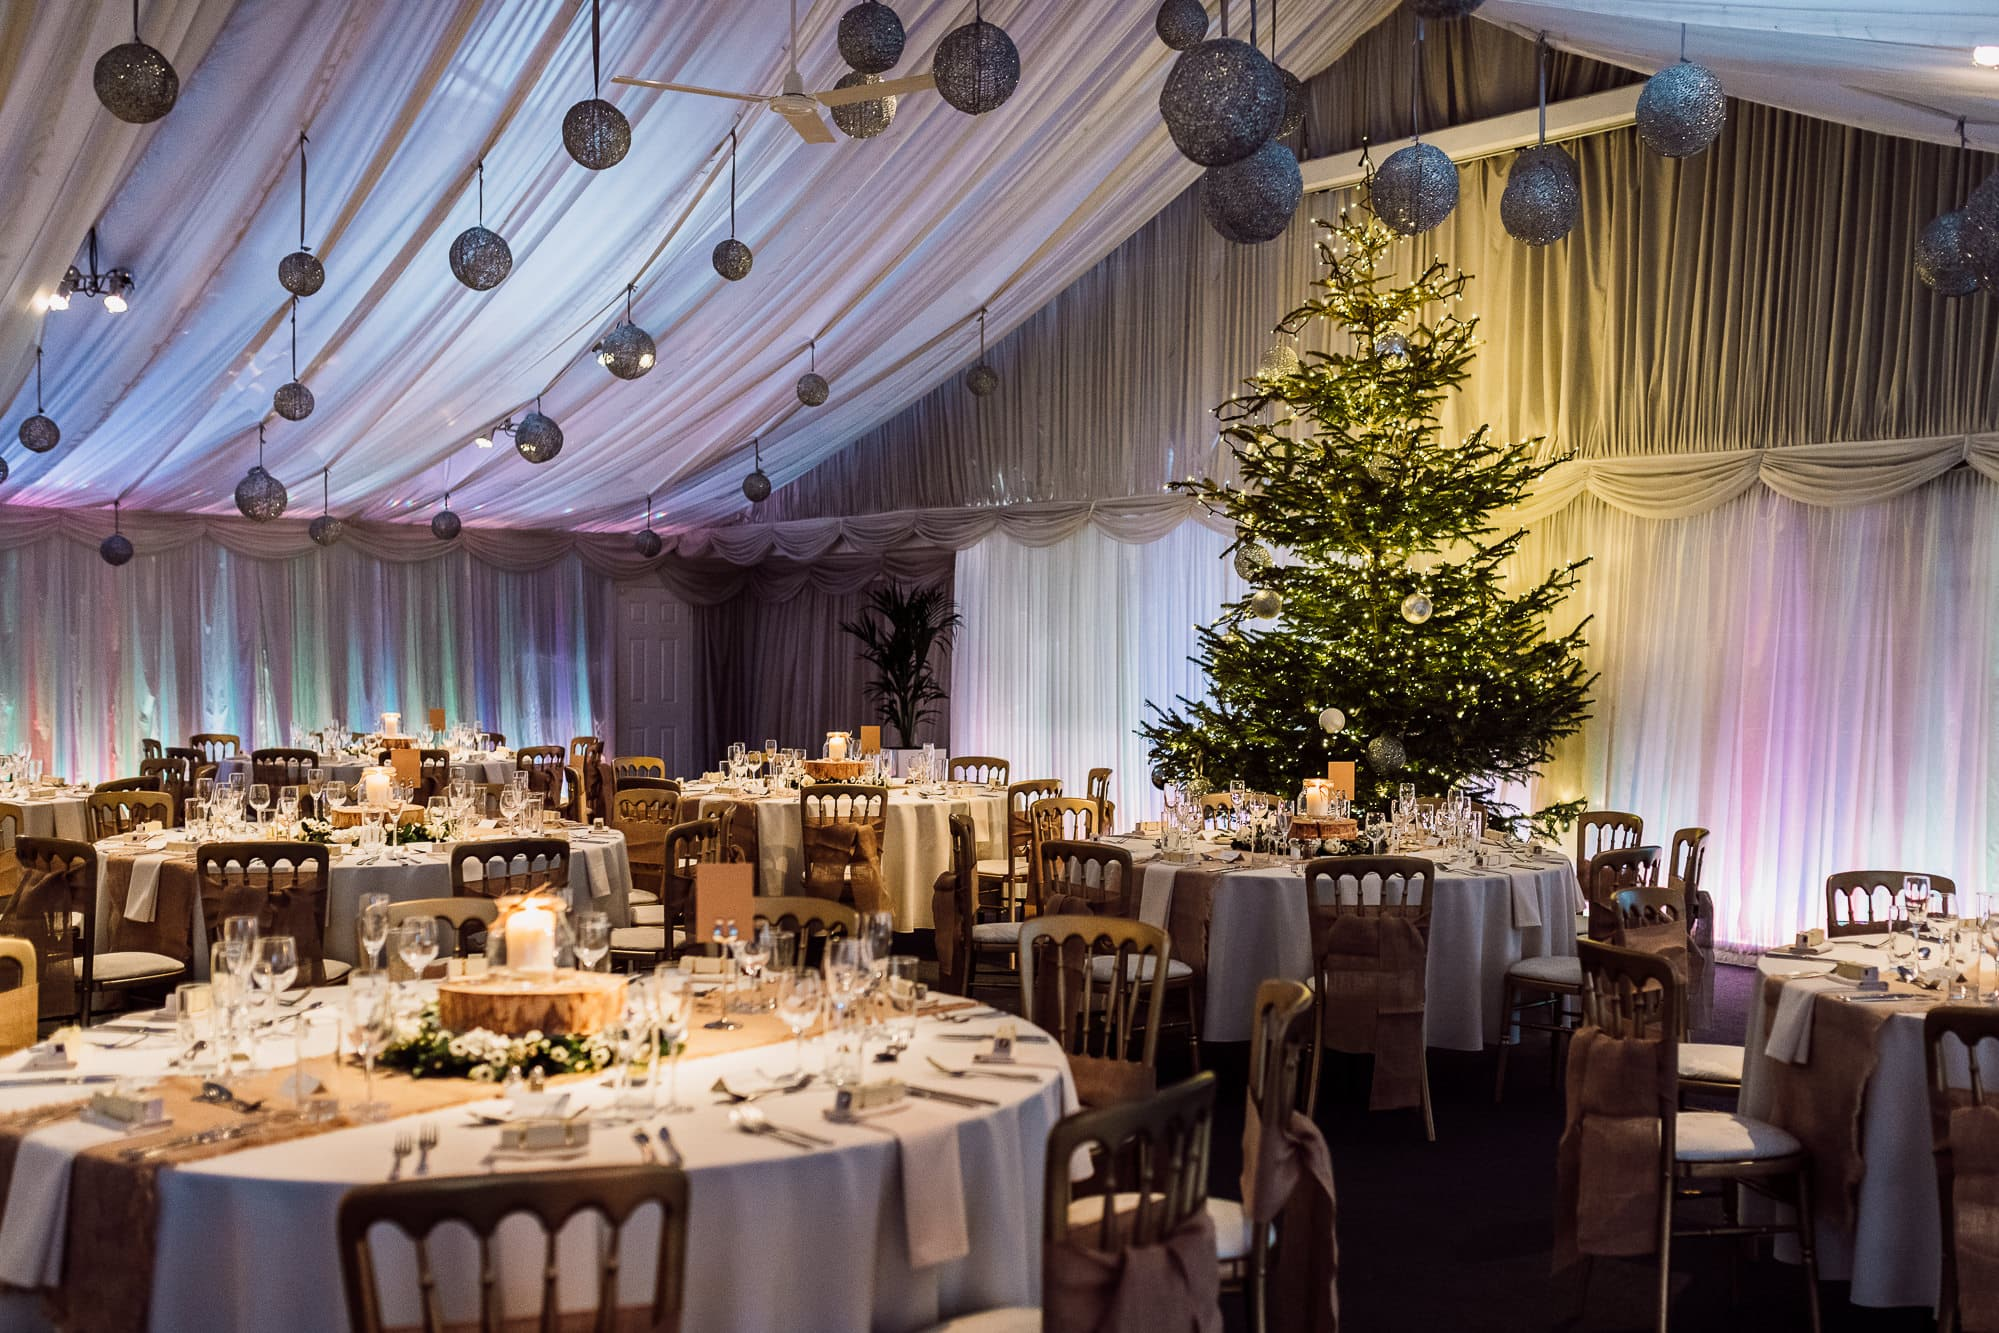 Wedding Breakfast Room at Heaton House Farm with a Christmas tree